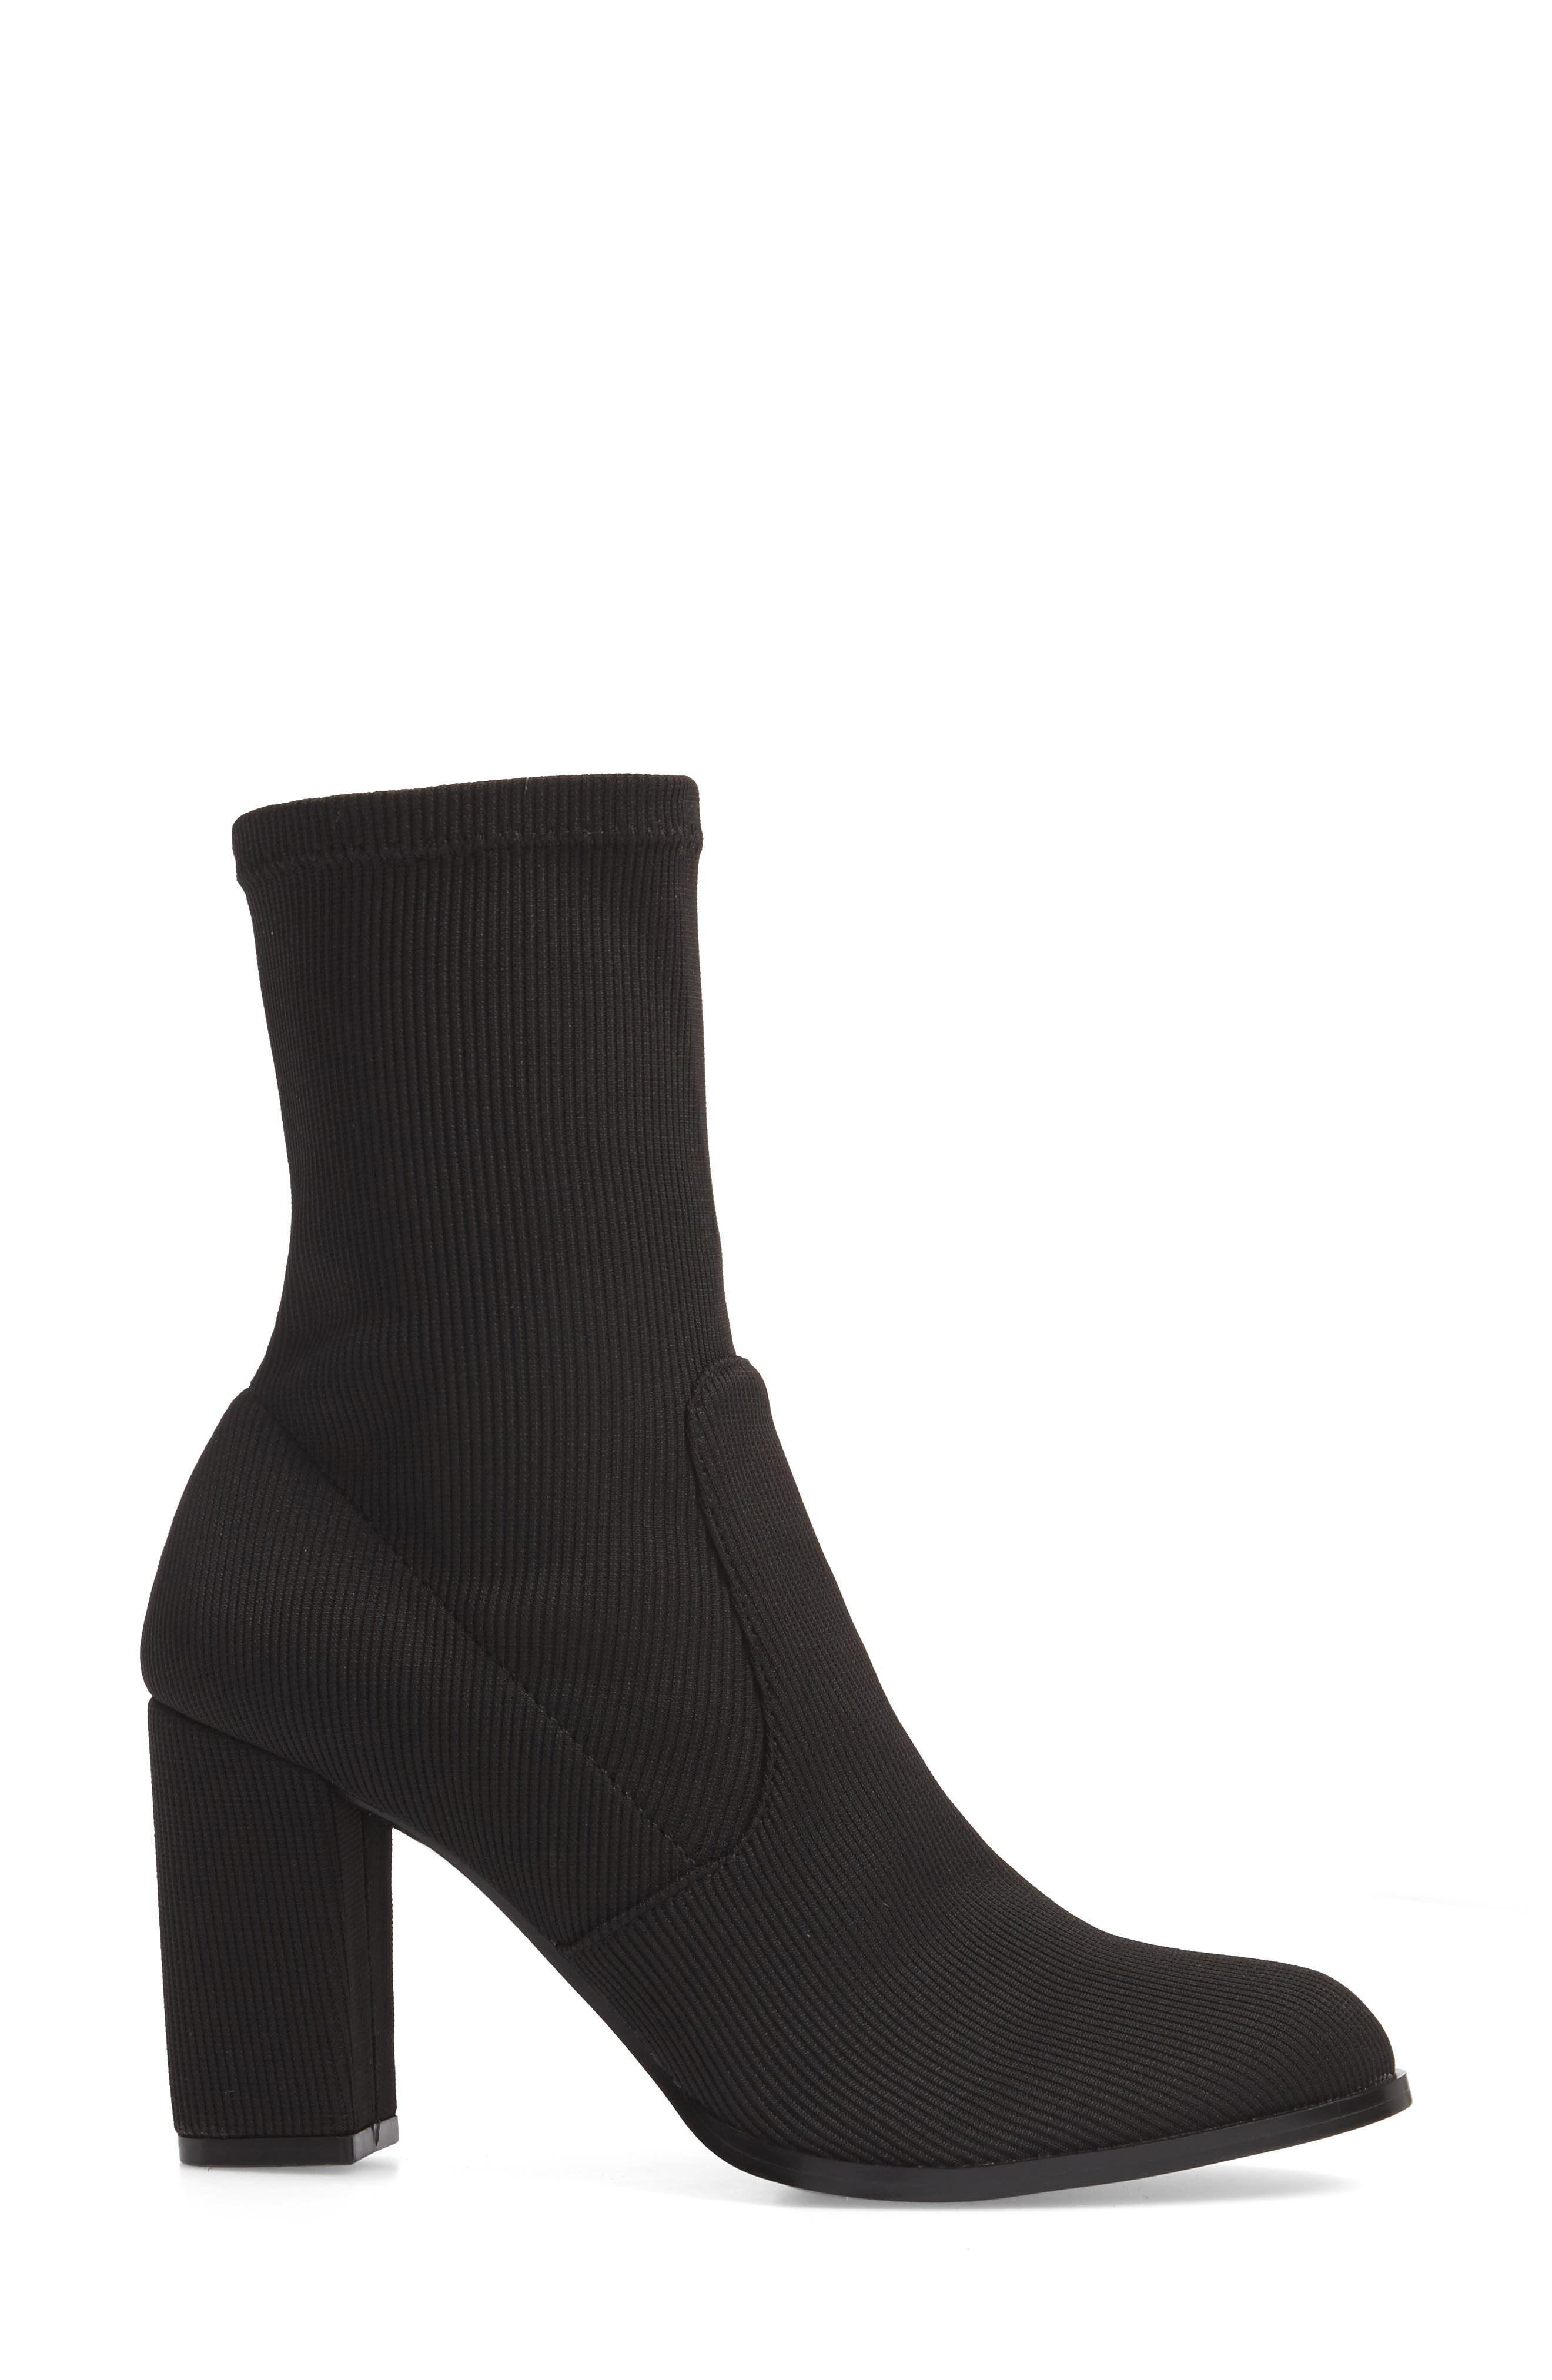 CHINESE LAUNDRY, Craze Bootie, Alternate thumbnail 3, color, BLACK FABRIC